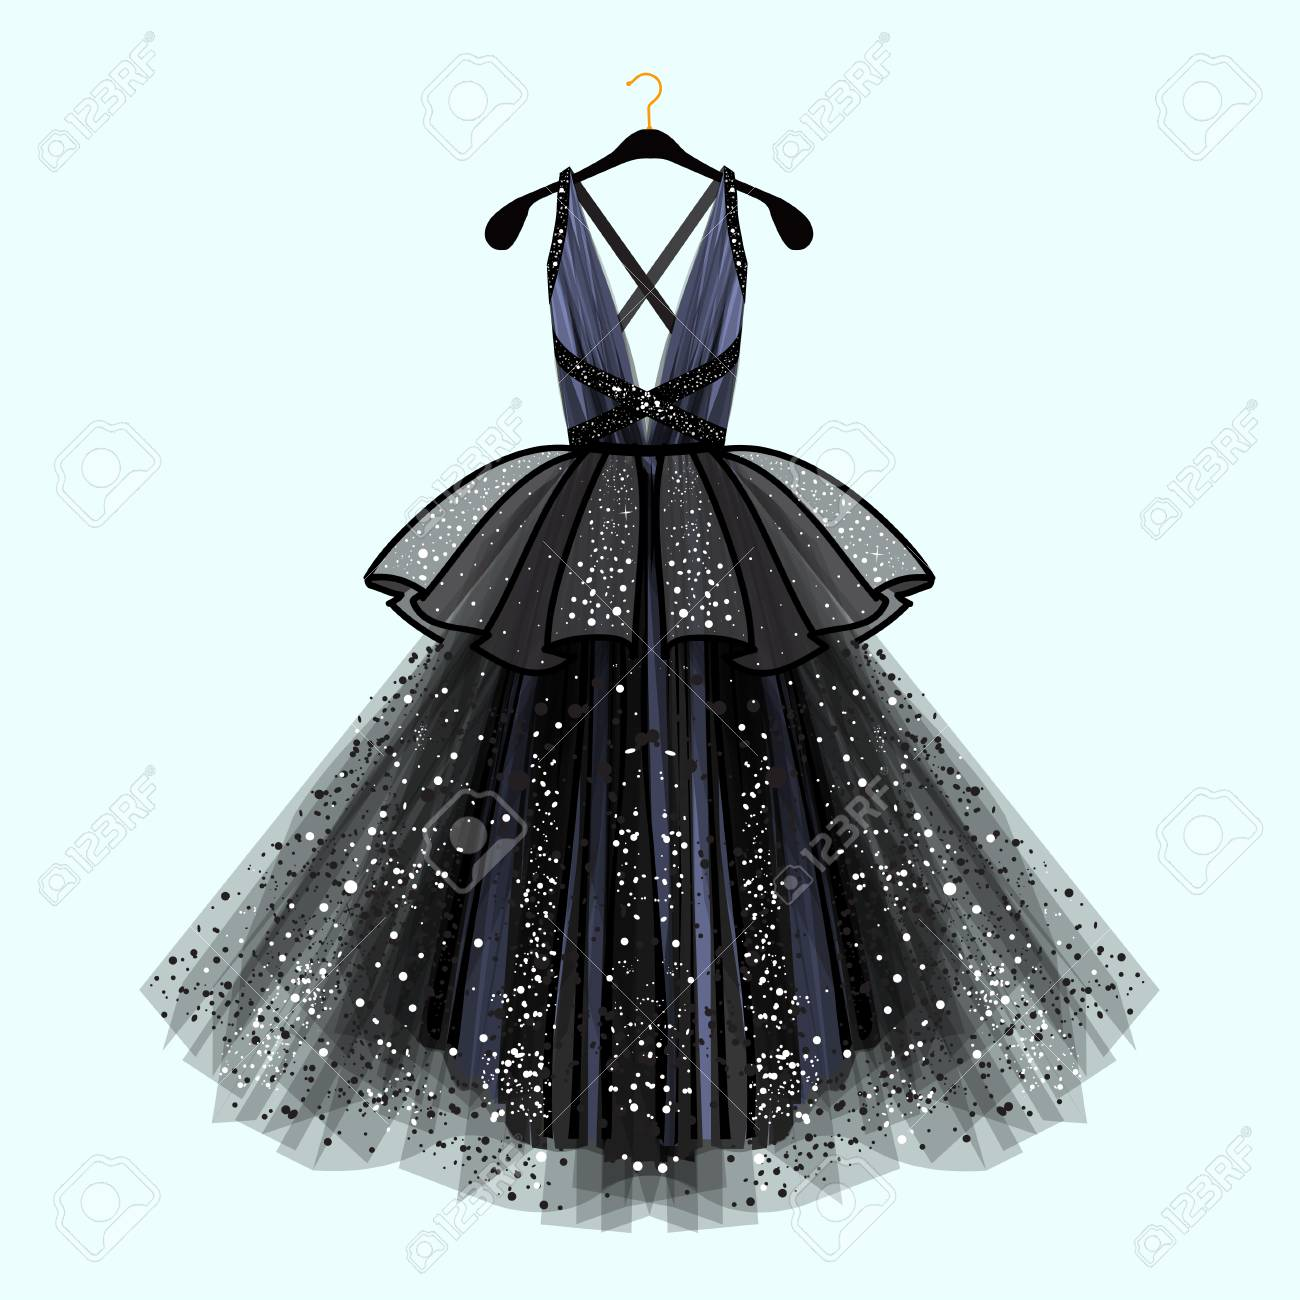 Gorgeous Party Dress  Party Dress With Fancy Decor Fashion     Gorgeous party dress  Party dress with fancy decor Fashion illustration  Stock Vector   94352982